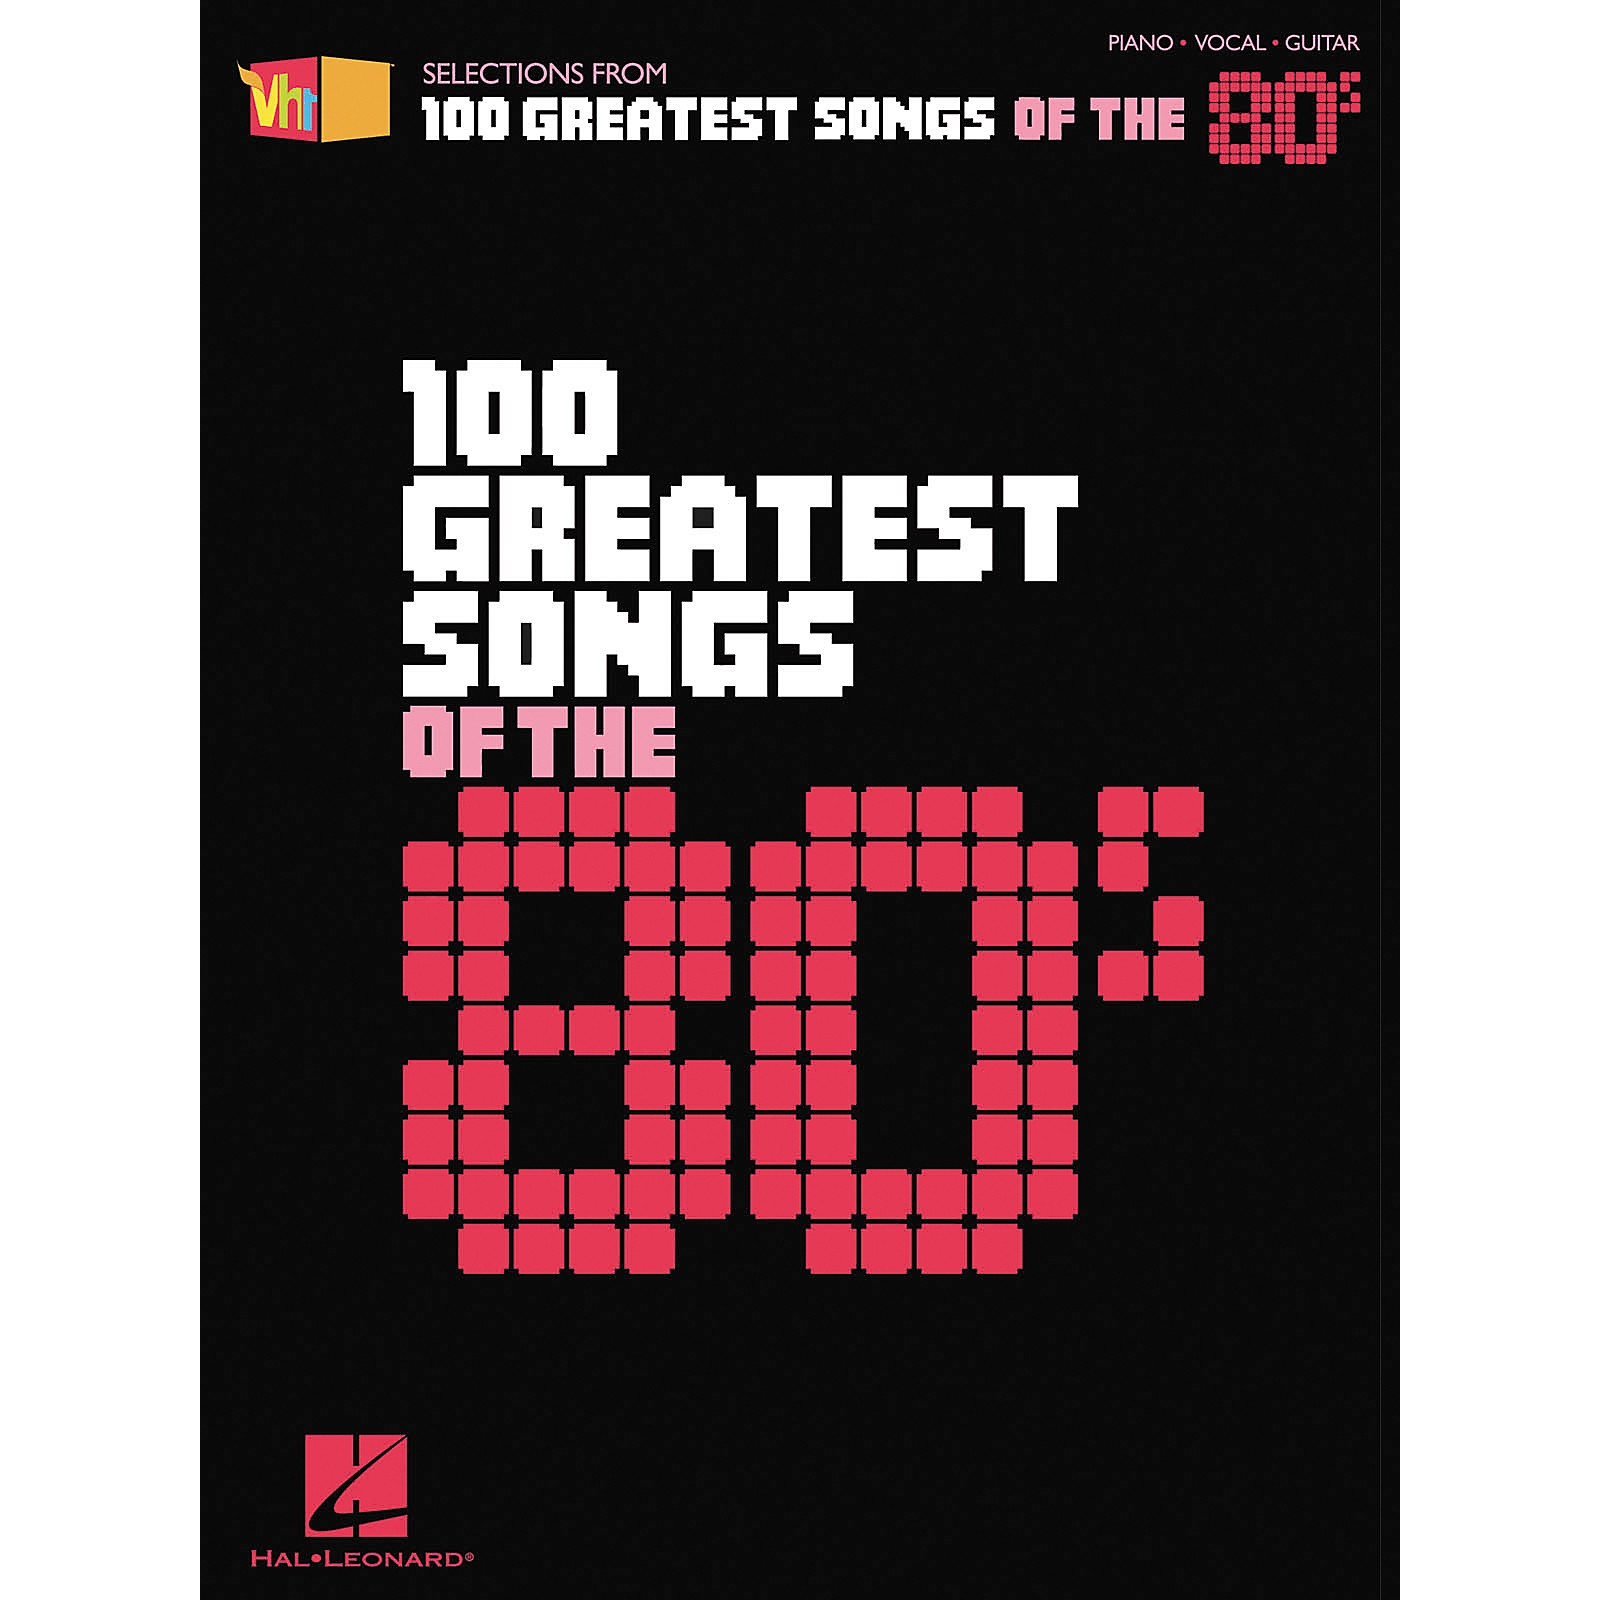 Hal Leonard VH1 100 Greatest Songs of the '80s Piano, Vocal, Guitar Songbook